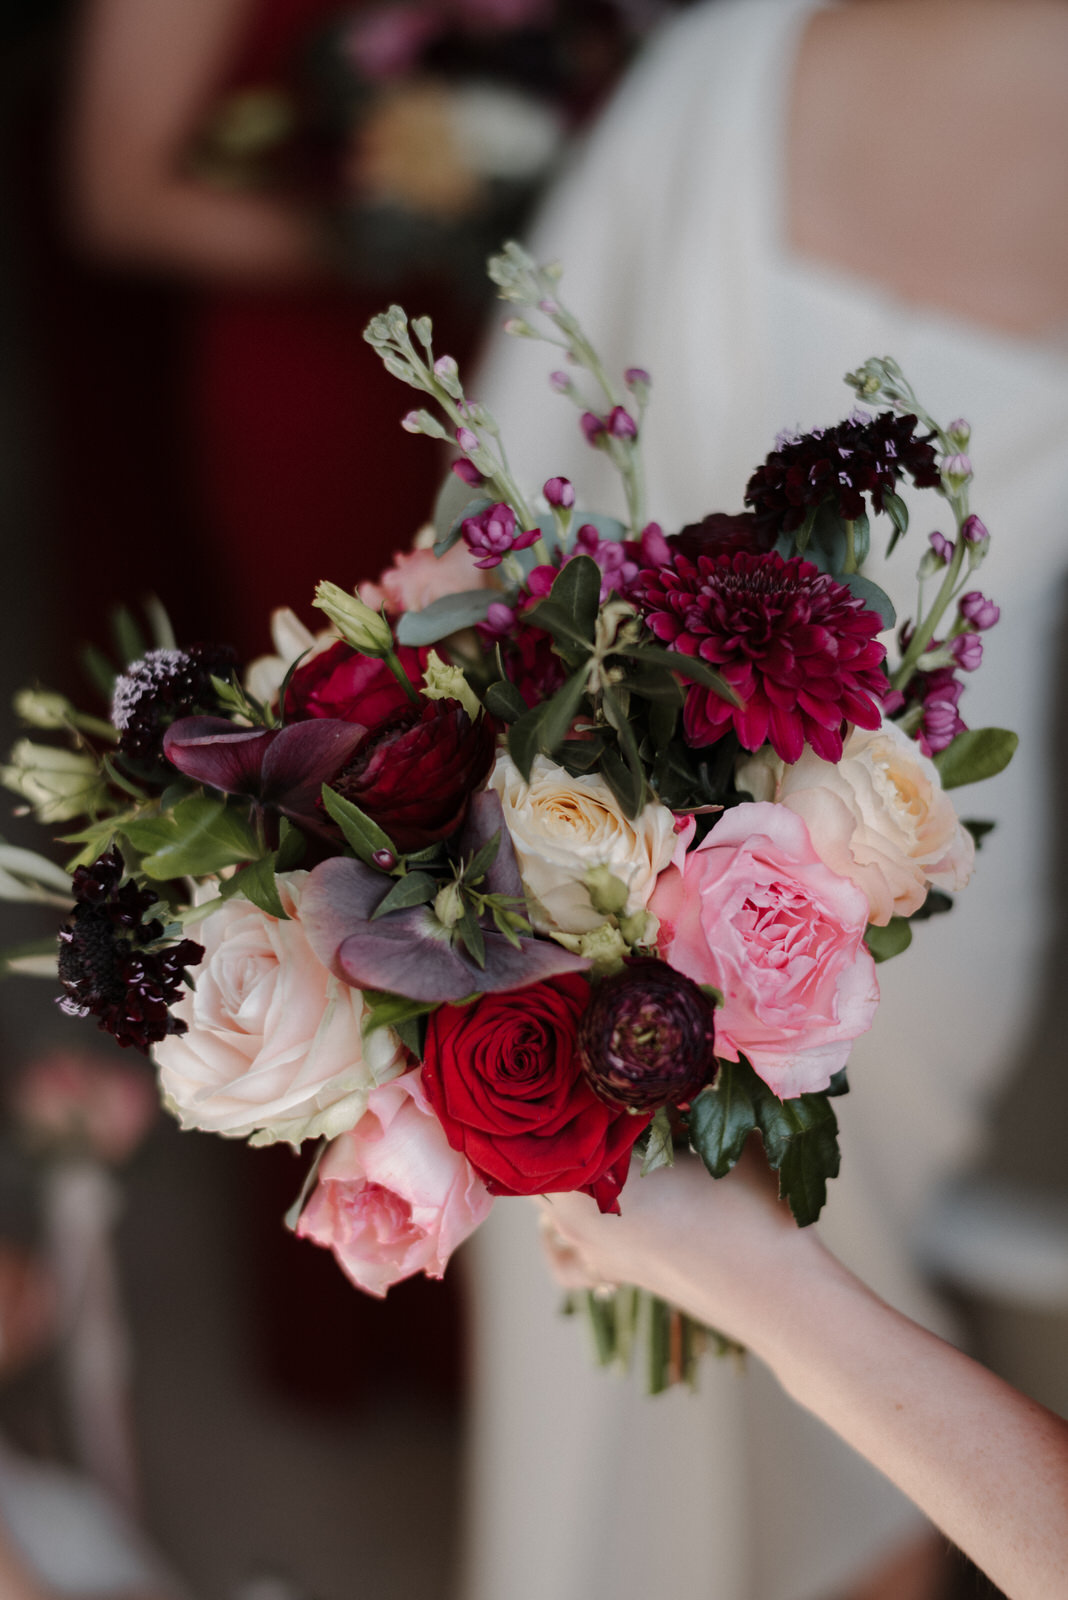 The Rosehip & Berry bridal bouquet